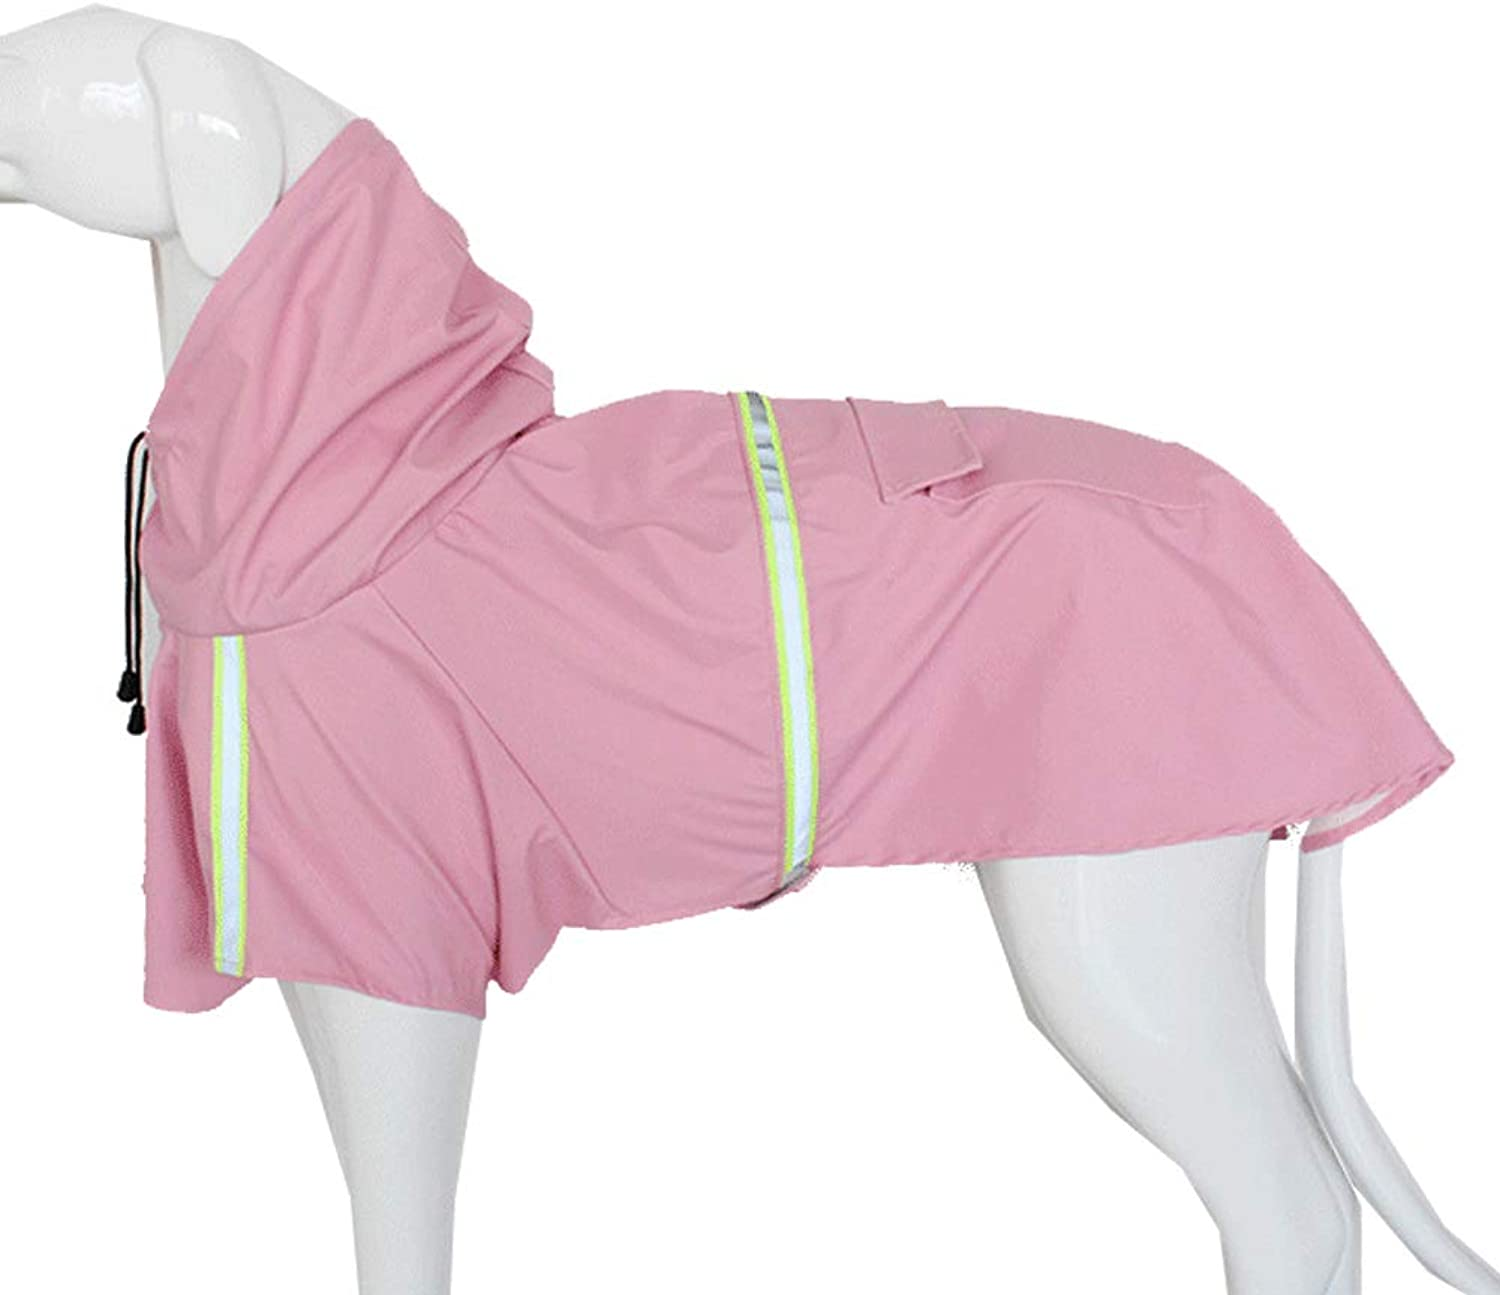 Dog Raincoat Waterproof Reflective Pet Clothes,Pink,4XL